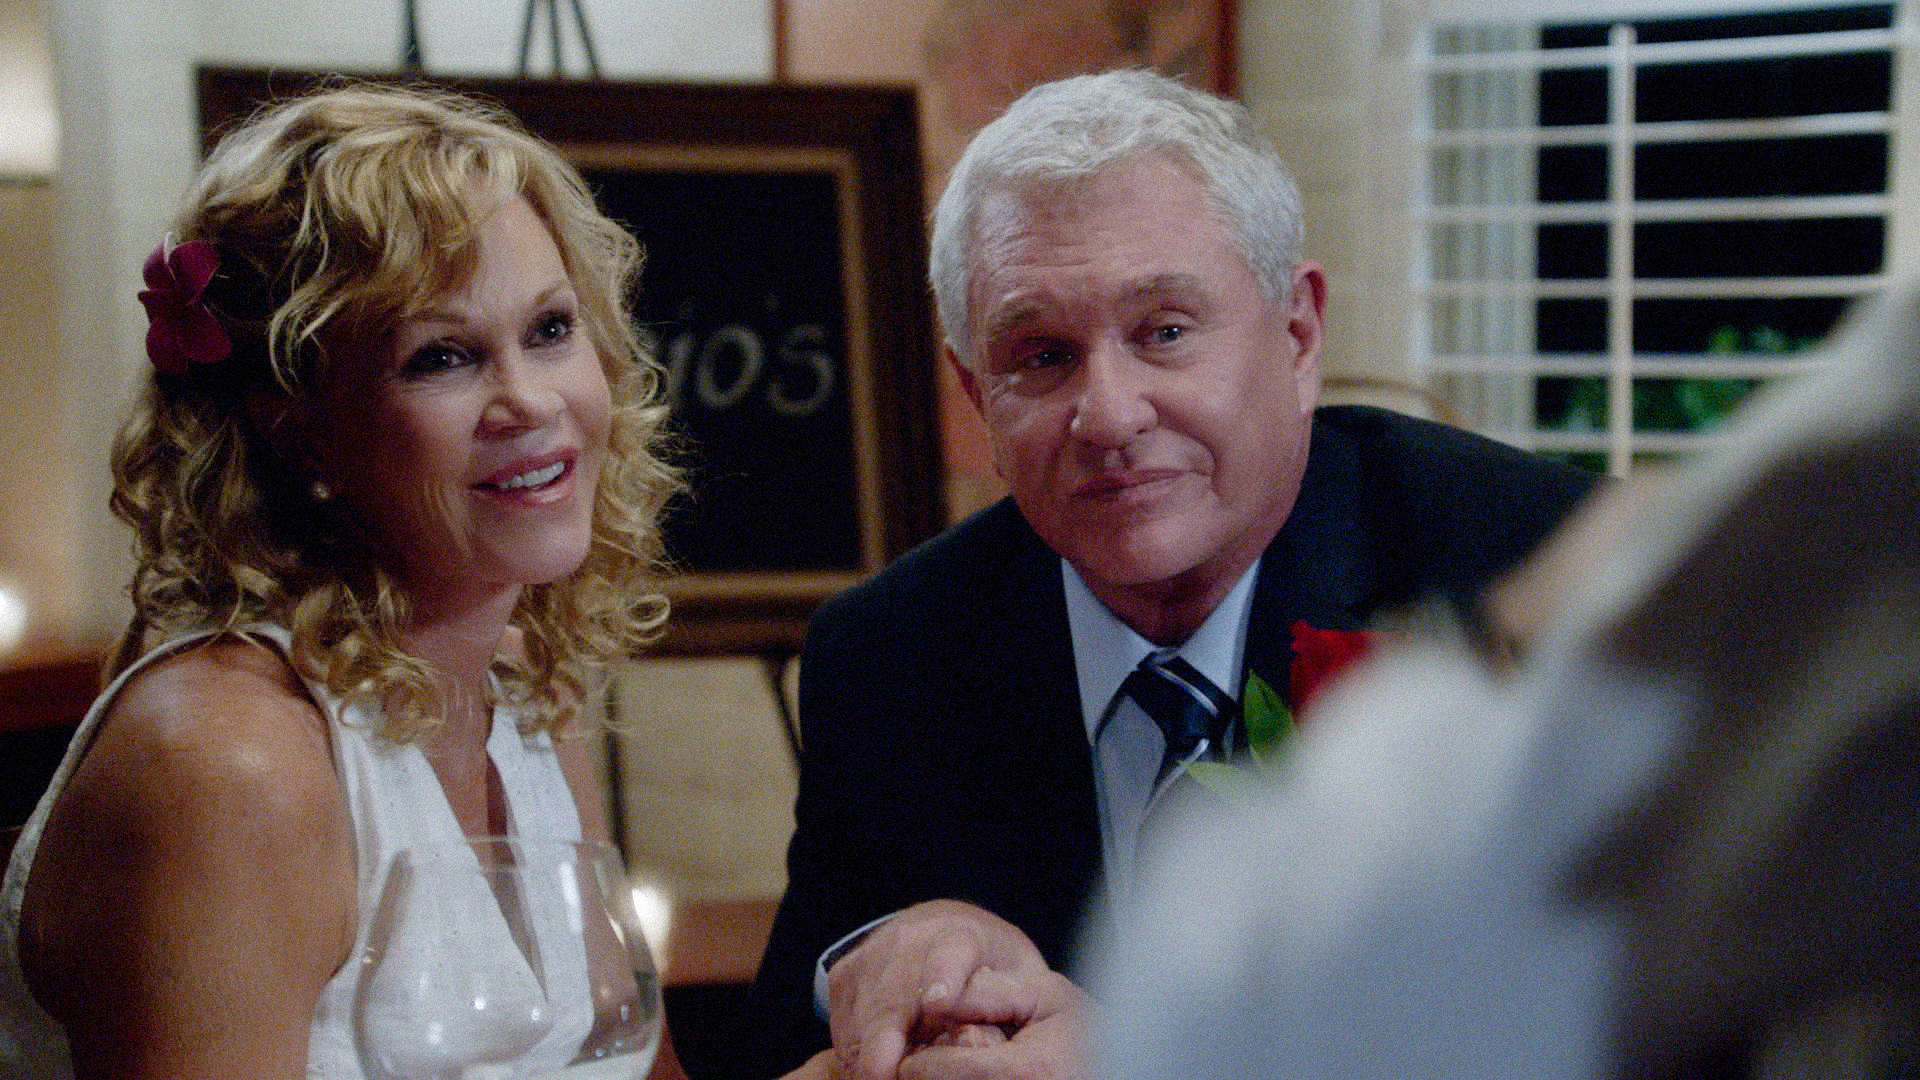 Melanie Griffith and Tom Berenger in